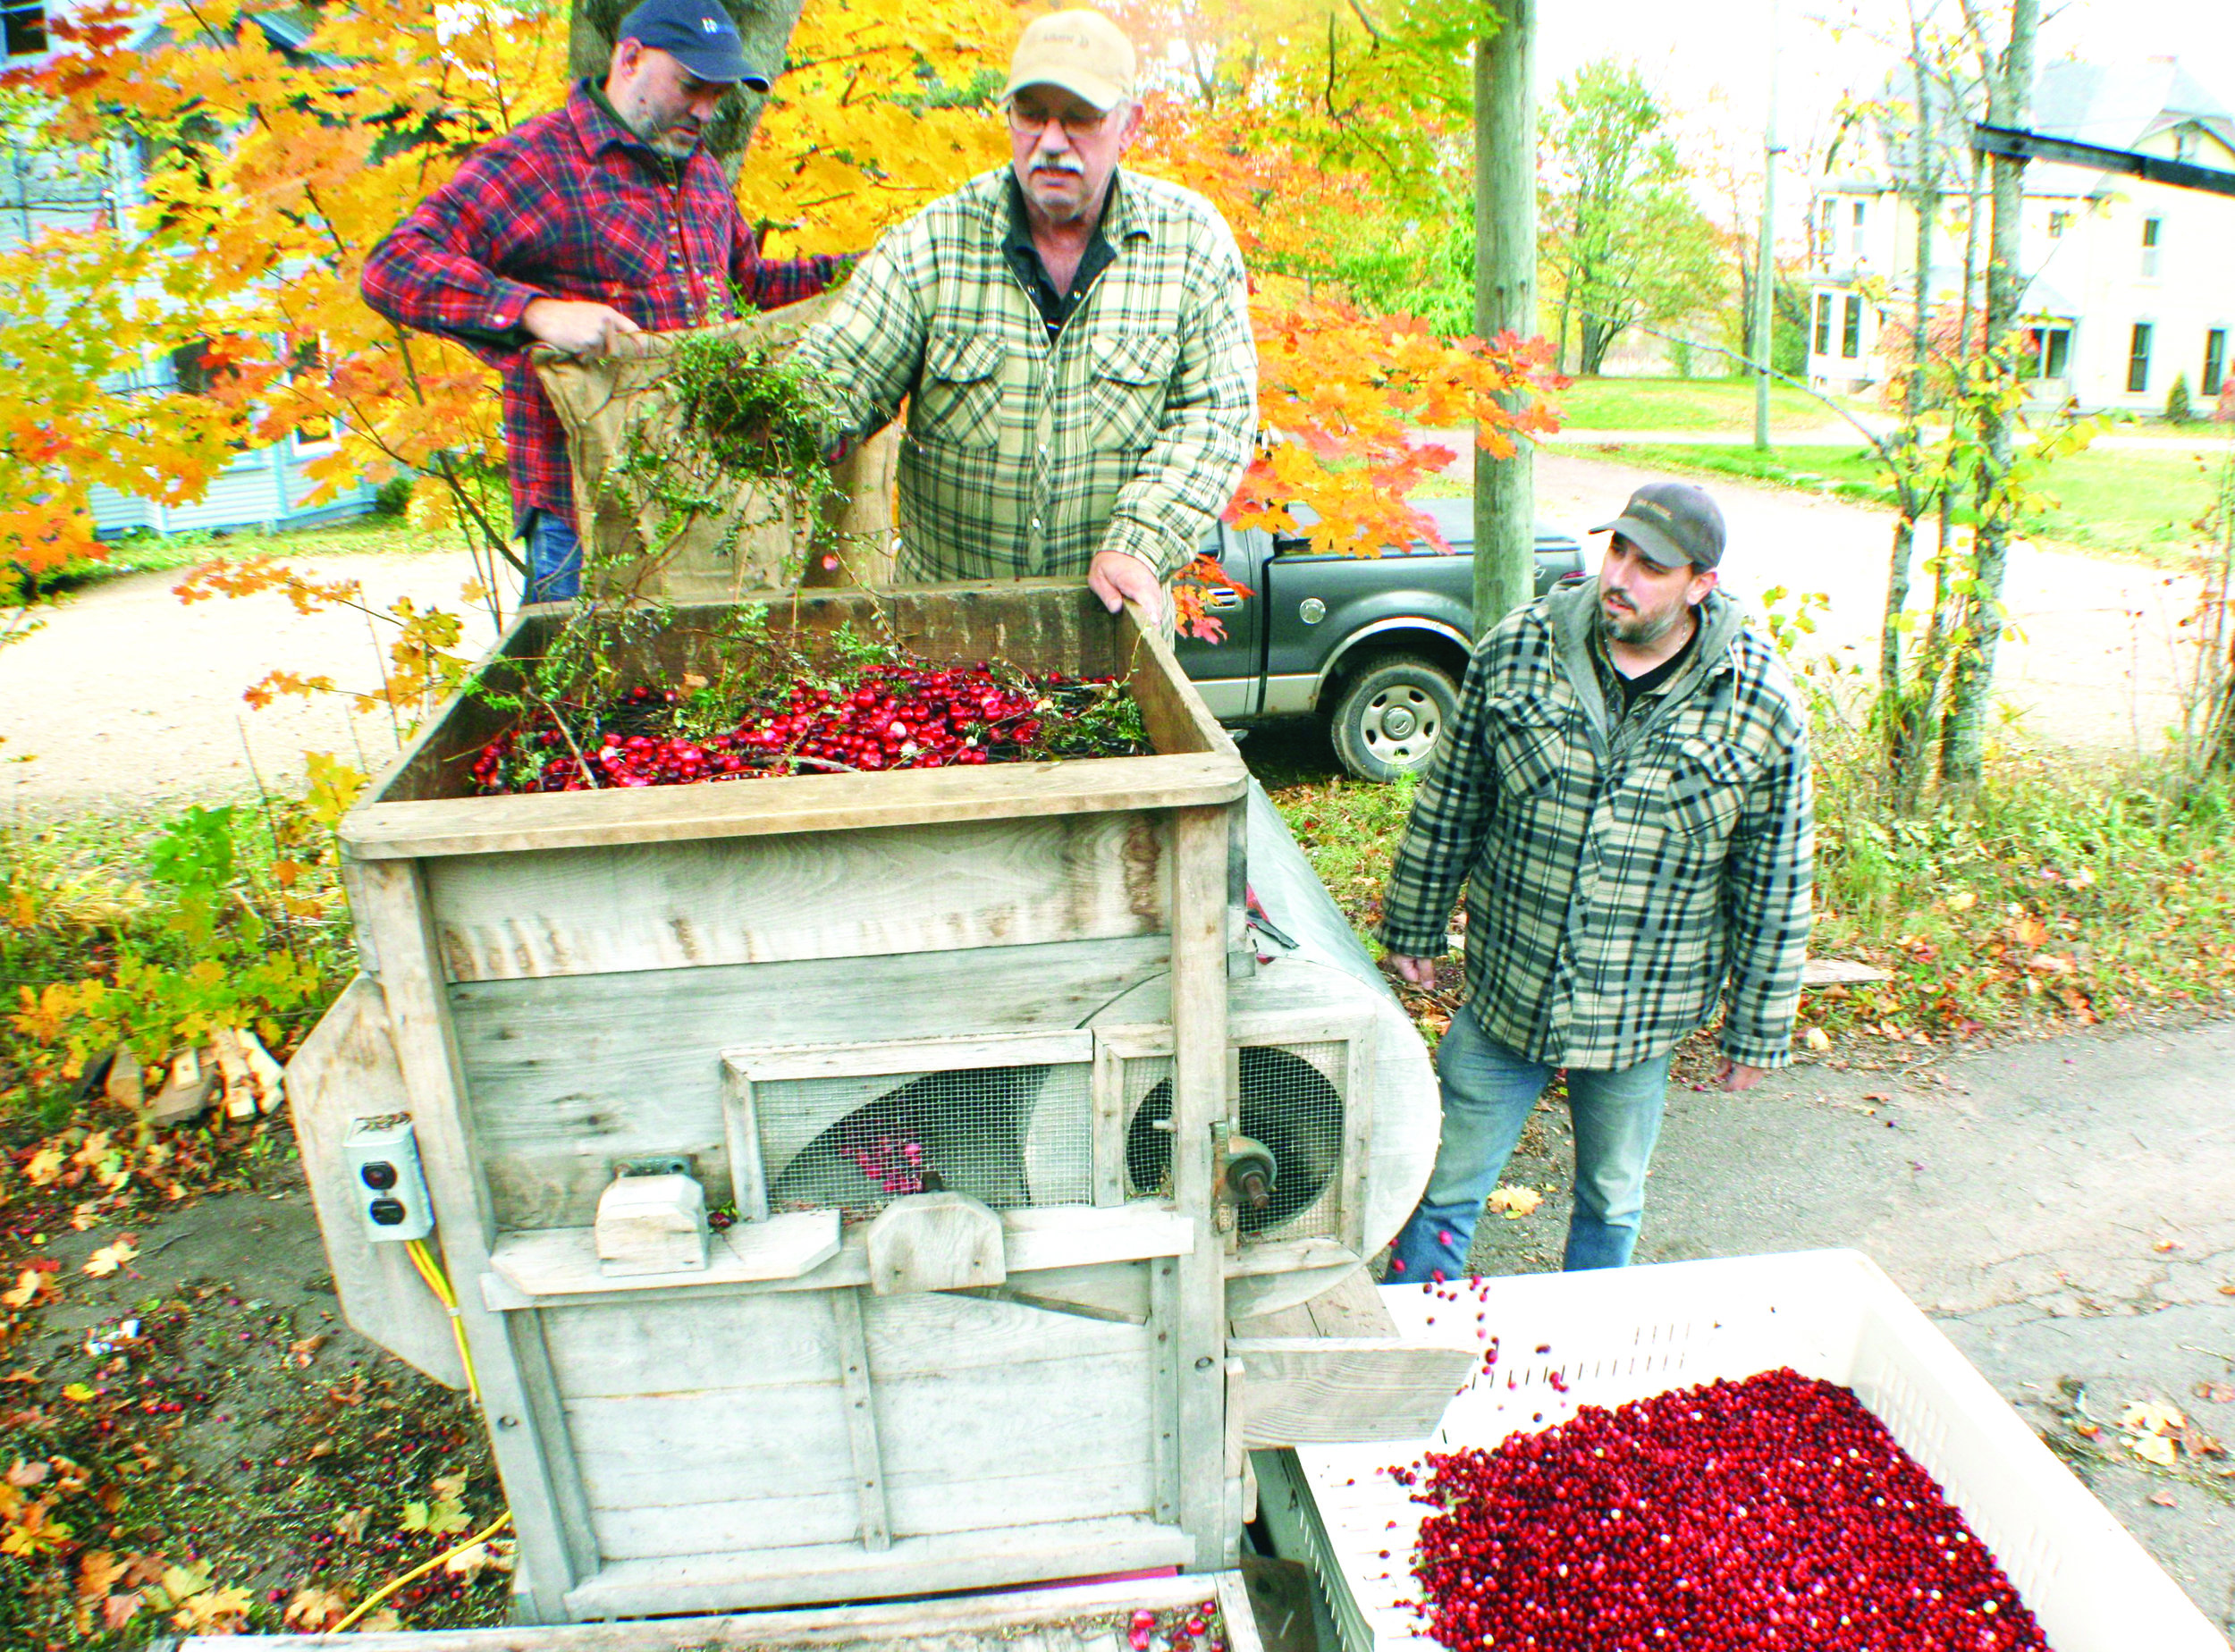 After the cranberries are harvested, they go through a blower machine, which removes most leaves and other vine debris. From left, Josh Allaby, Melvin Goodland, and Matthew Goodland use a vintage wooden blower machine at the Goodland home.